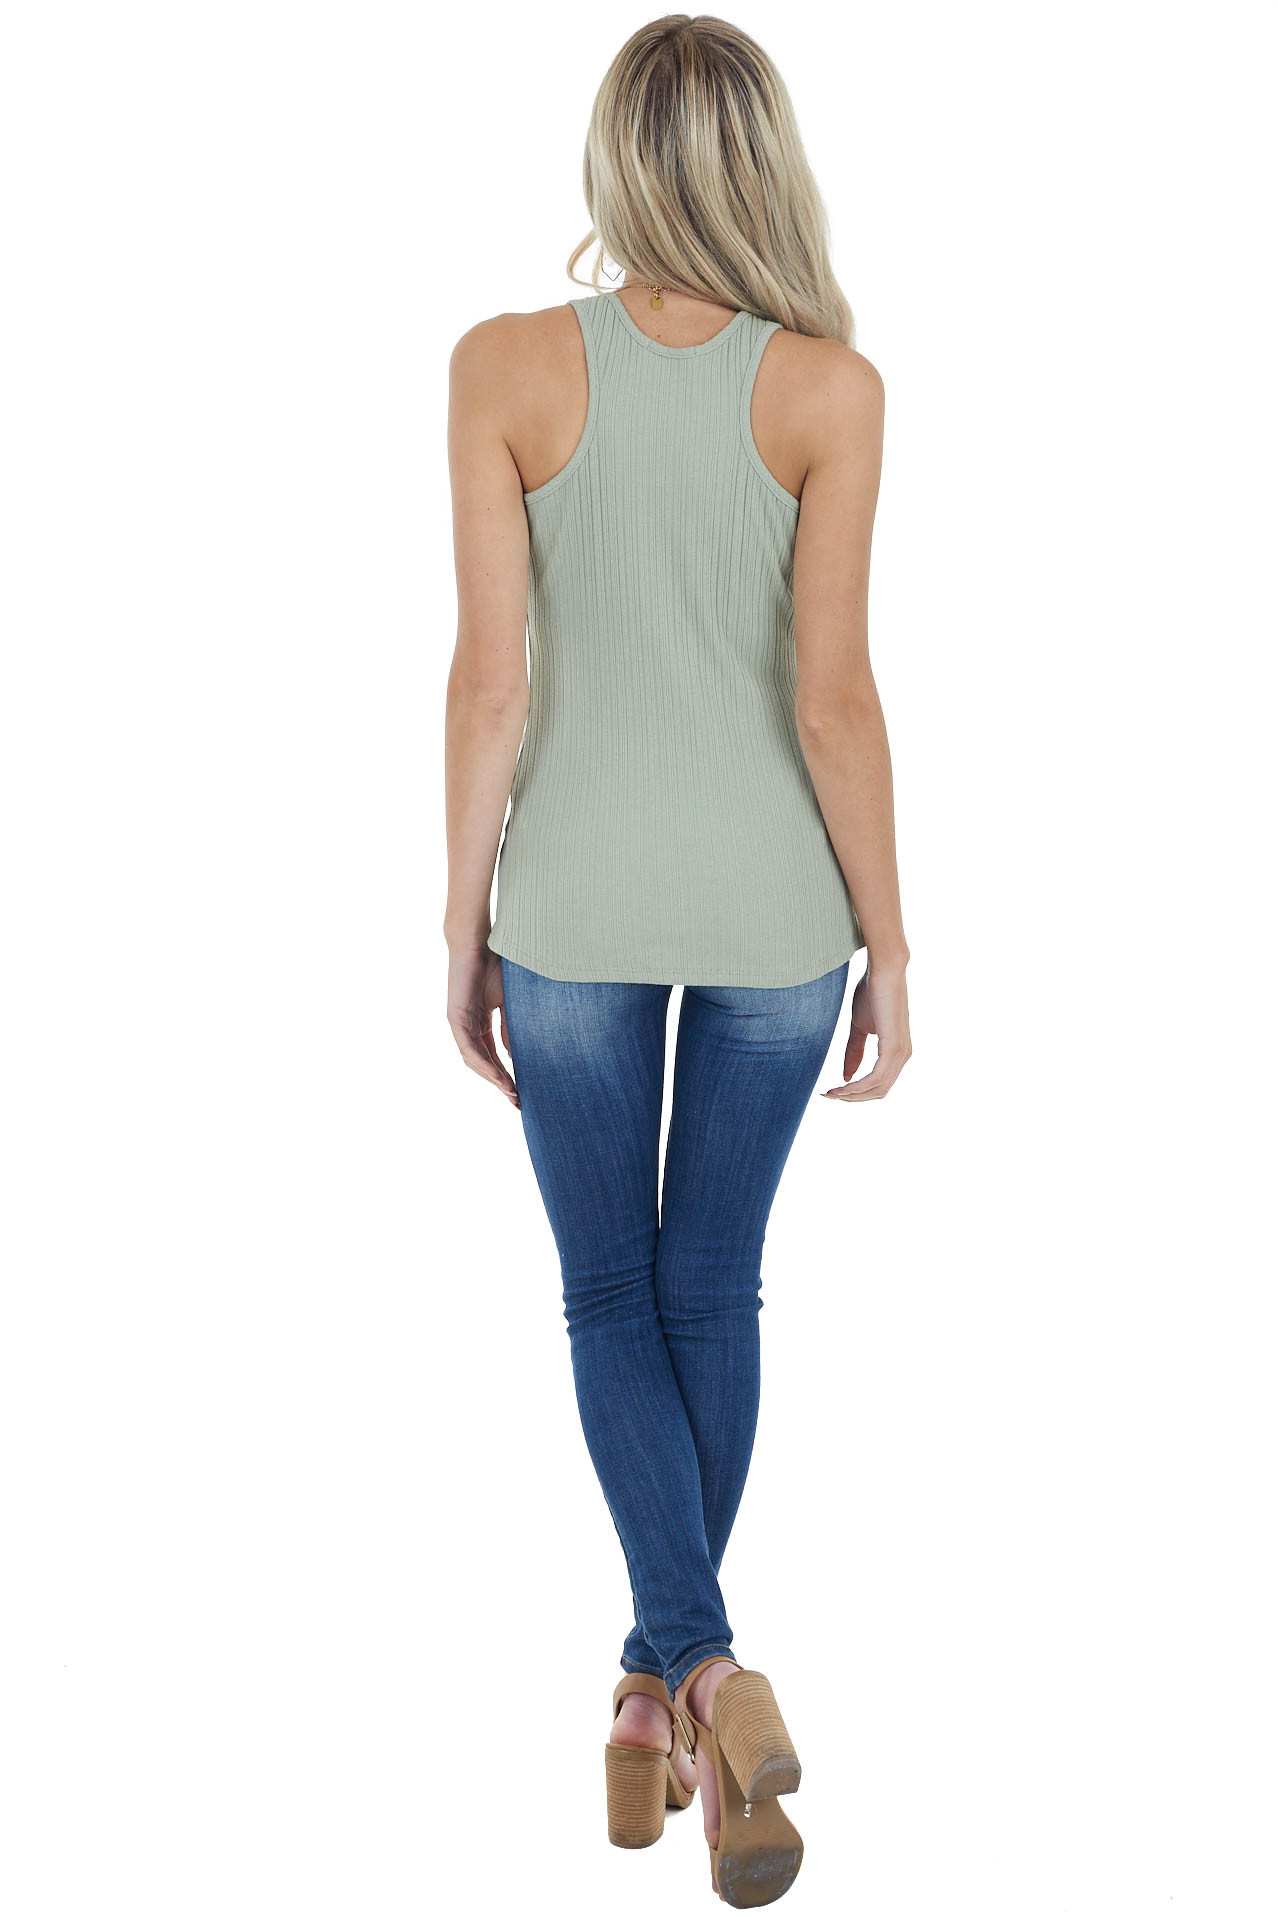 Dusty Sage Sleeveless Ribbed Knit Top with Round Neckline